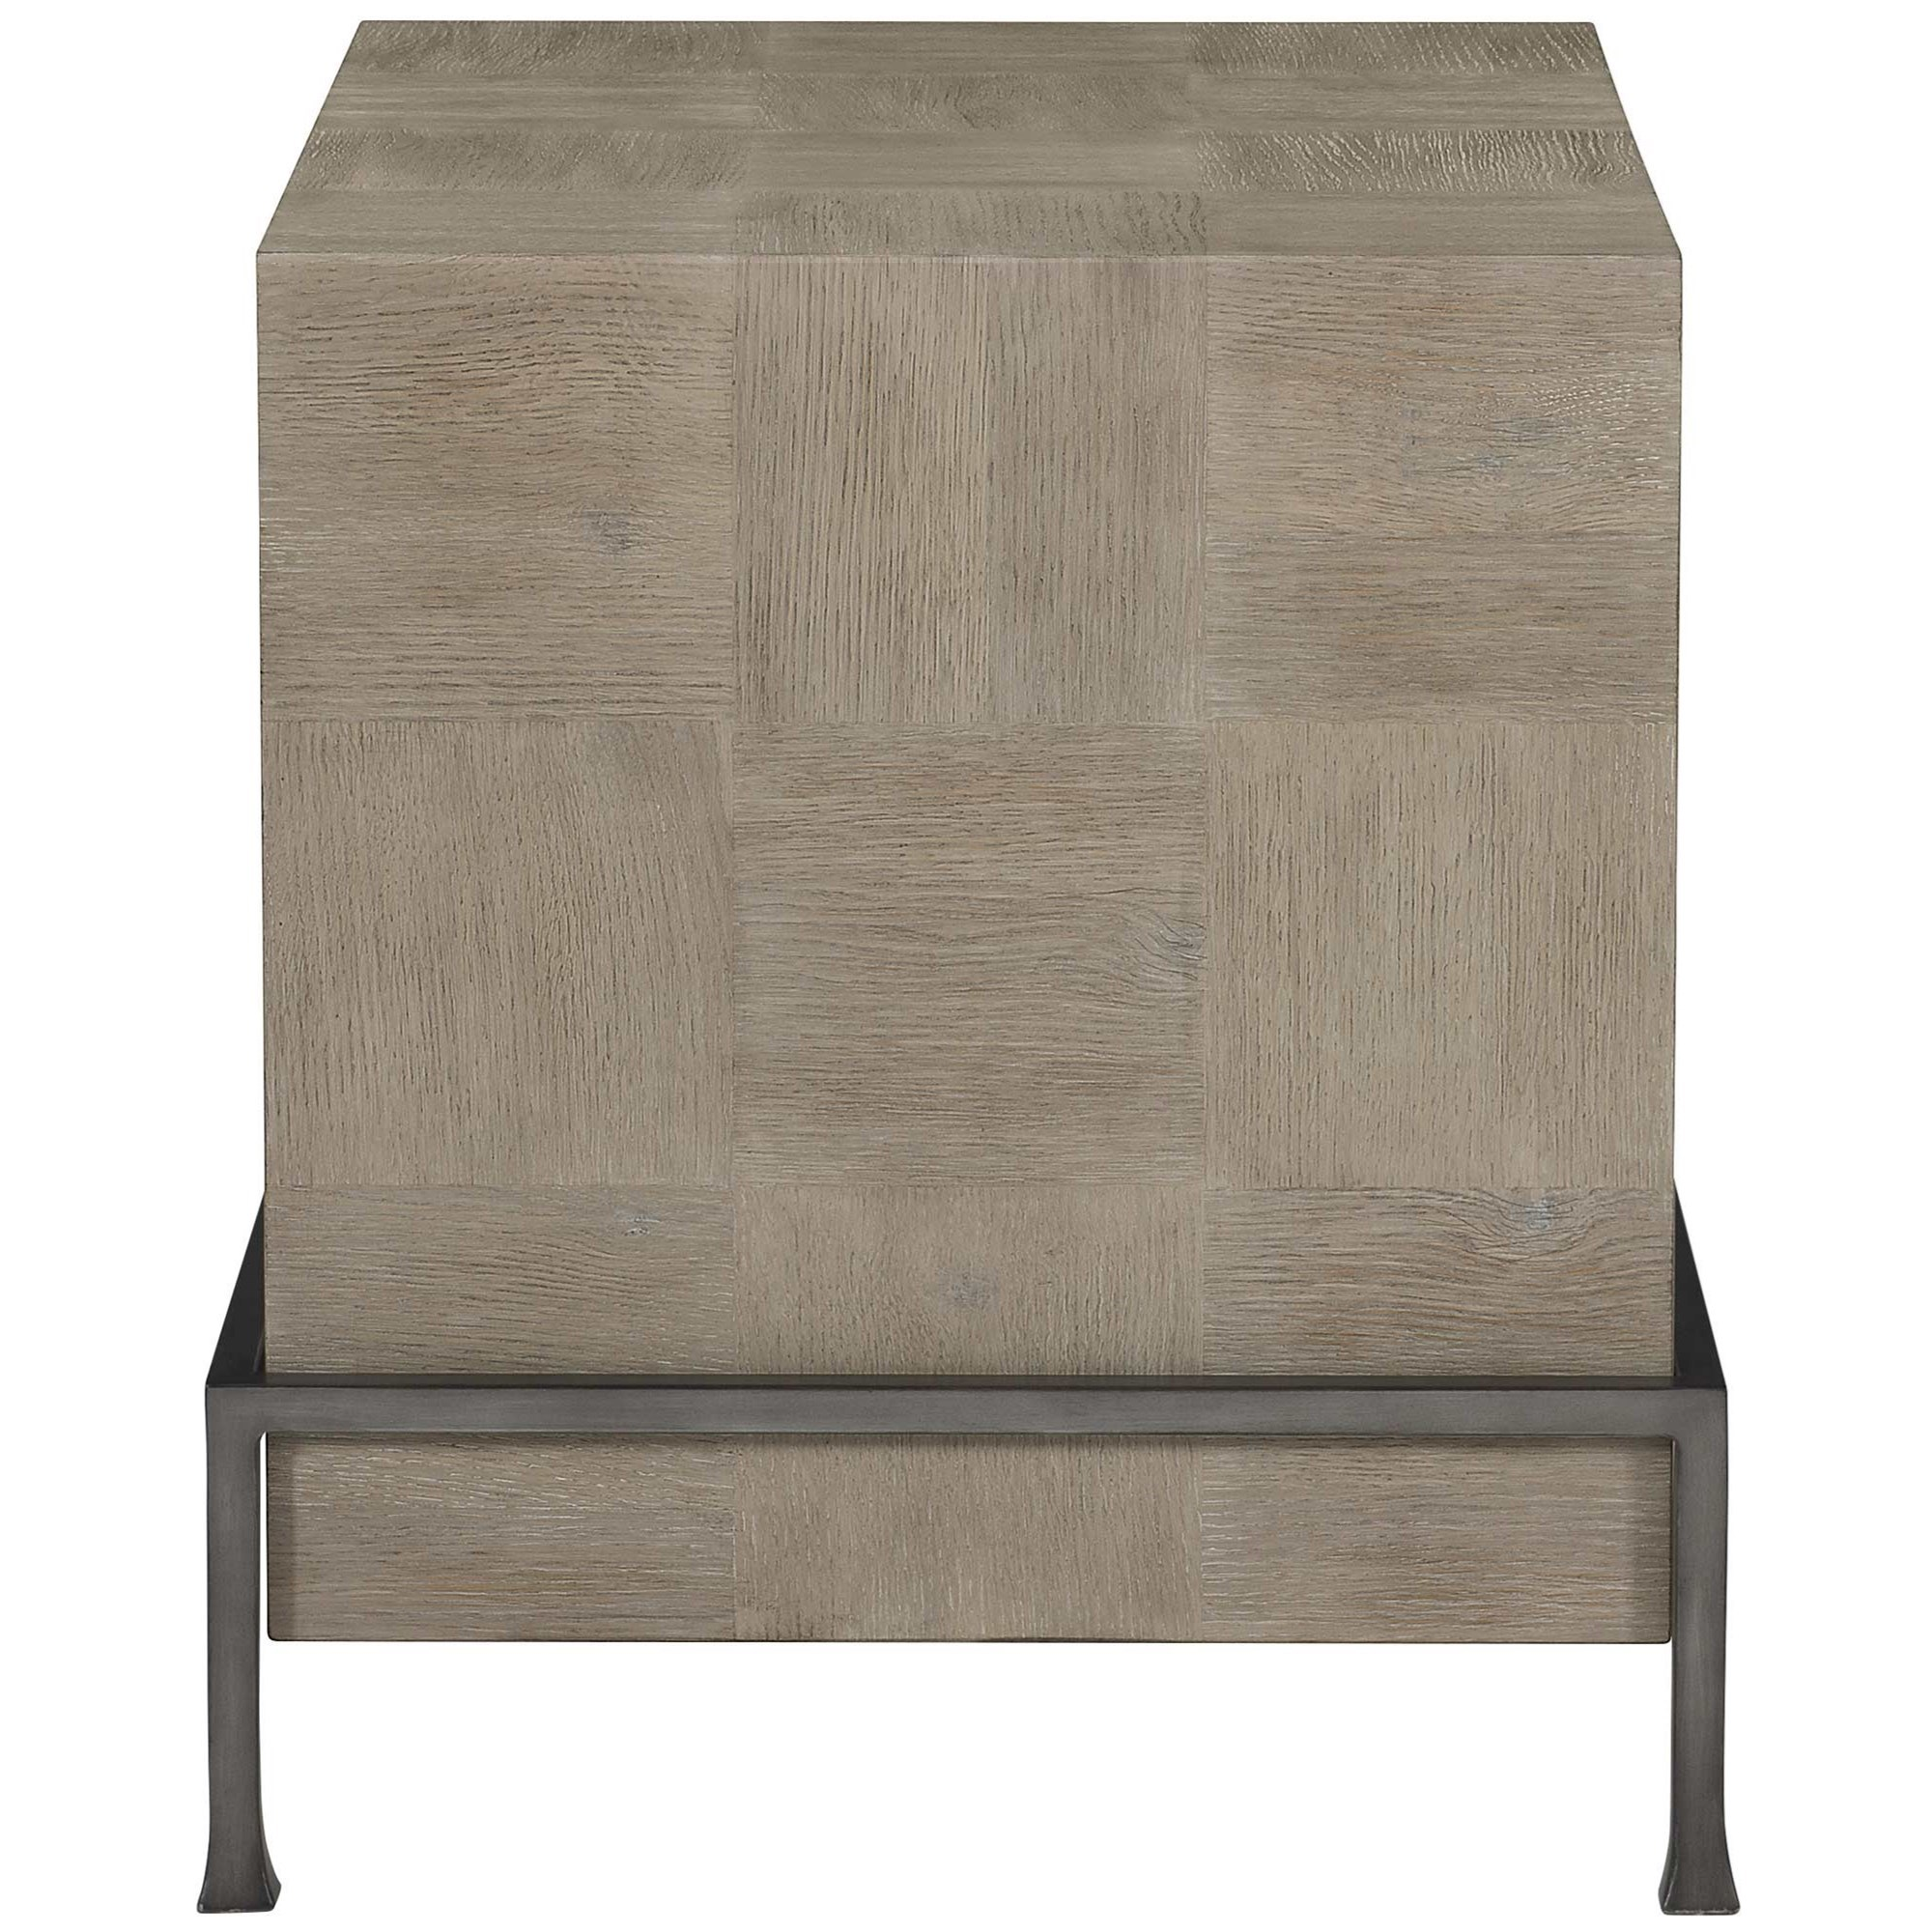 Fairgrove Side Table by Bernhardt at Malouf Furniture Co.